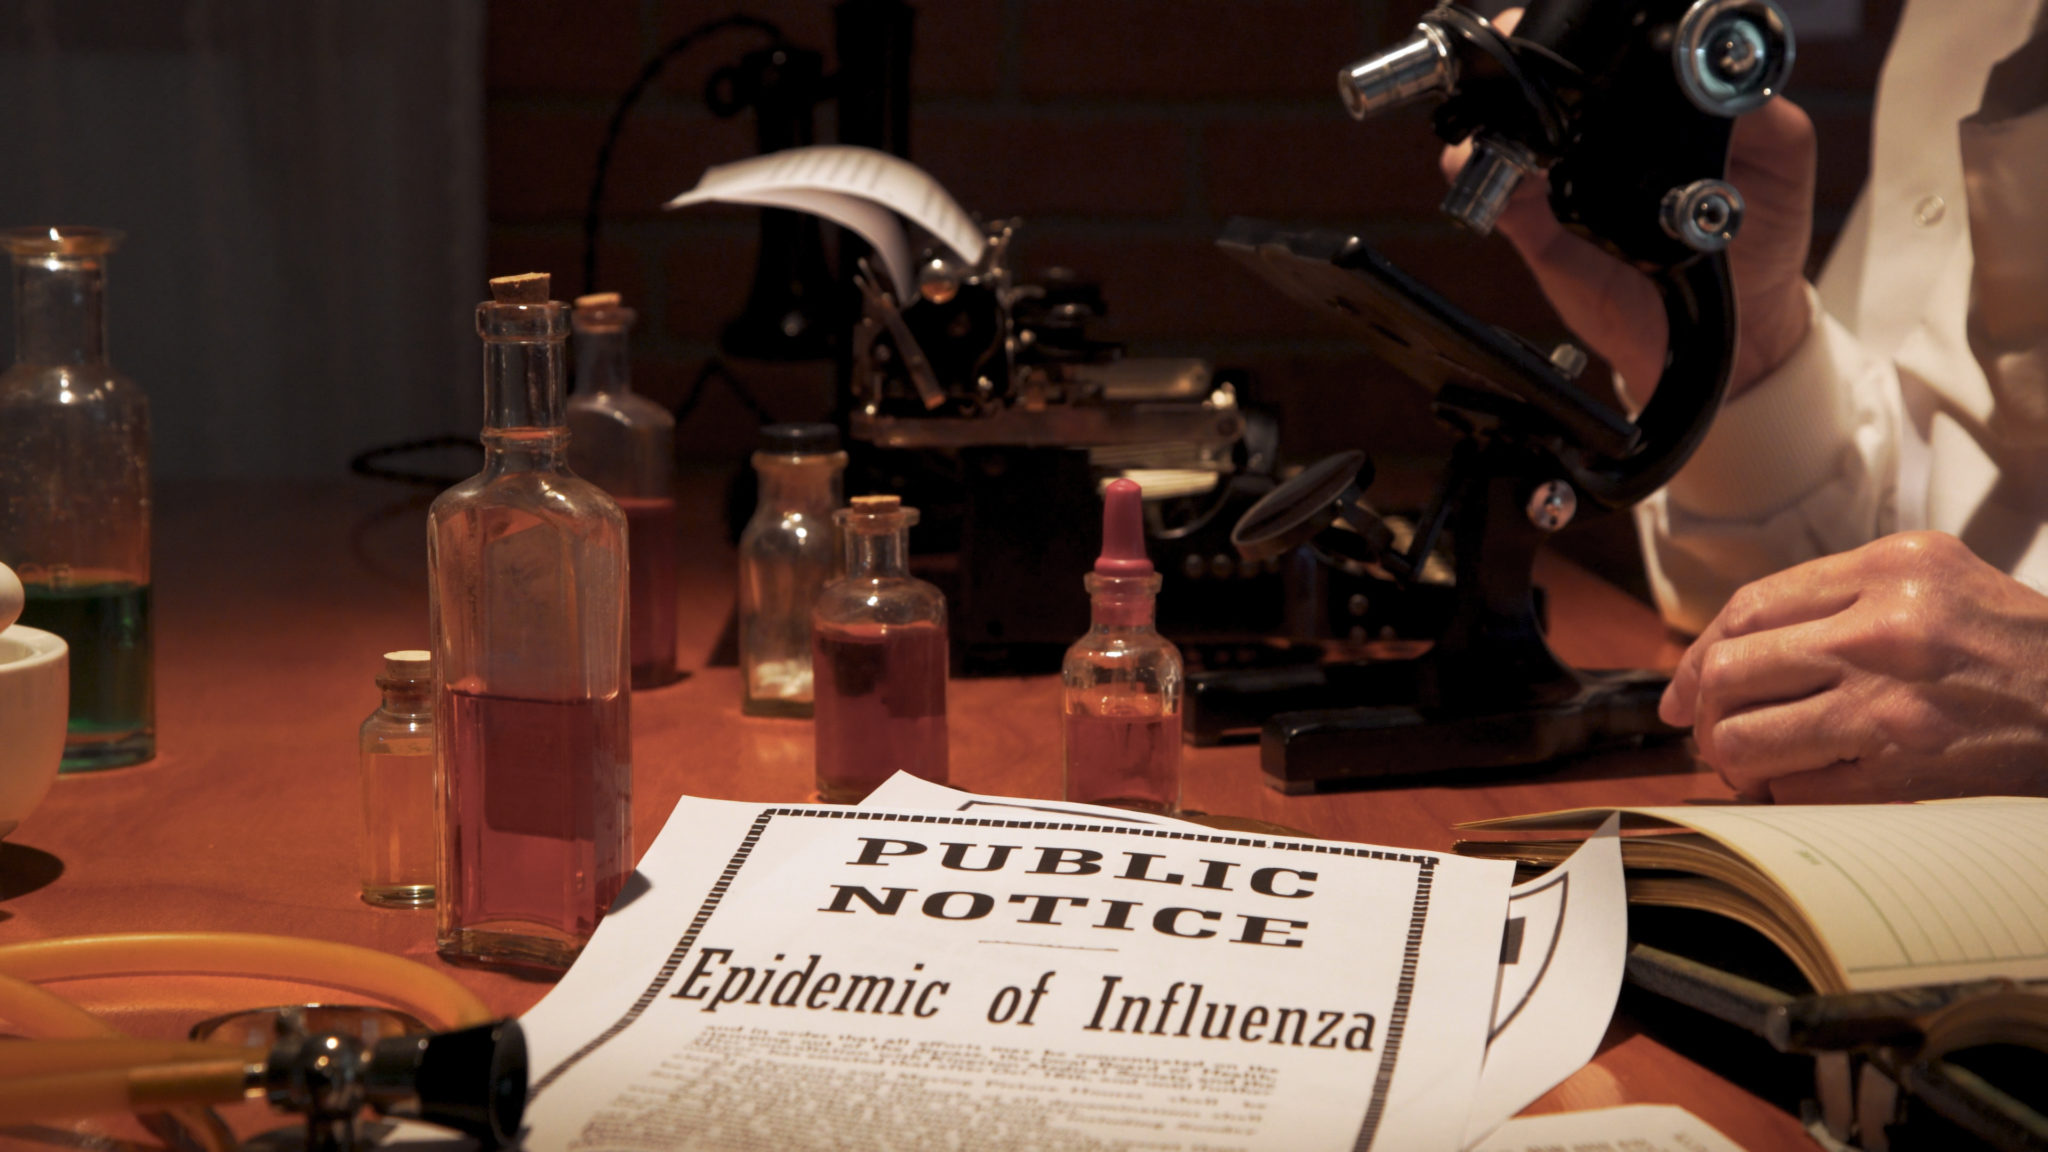 Lessons from the 1918 pandemic: A U.S. city's past may hold clues